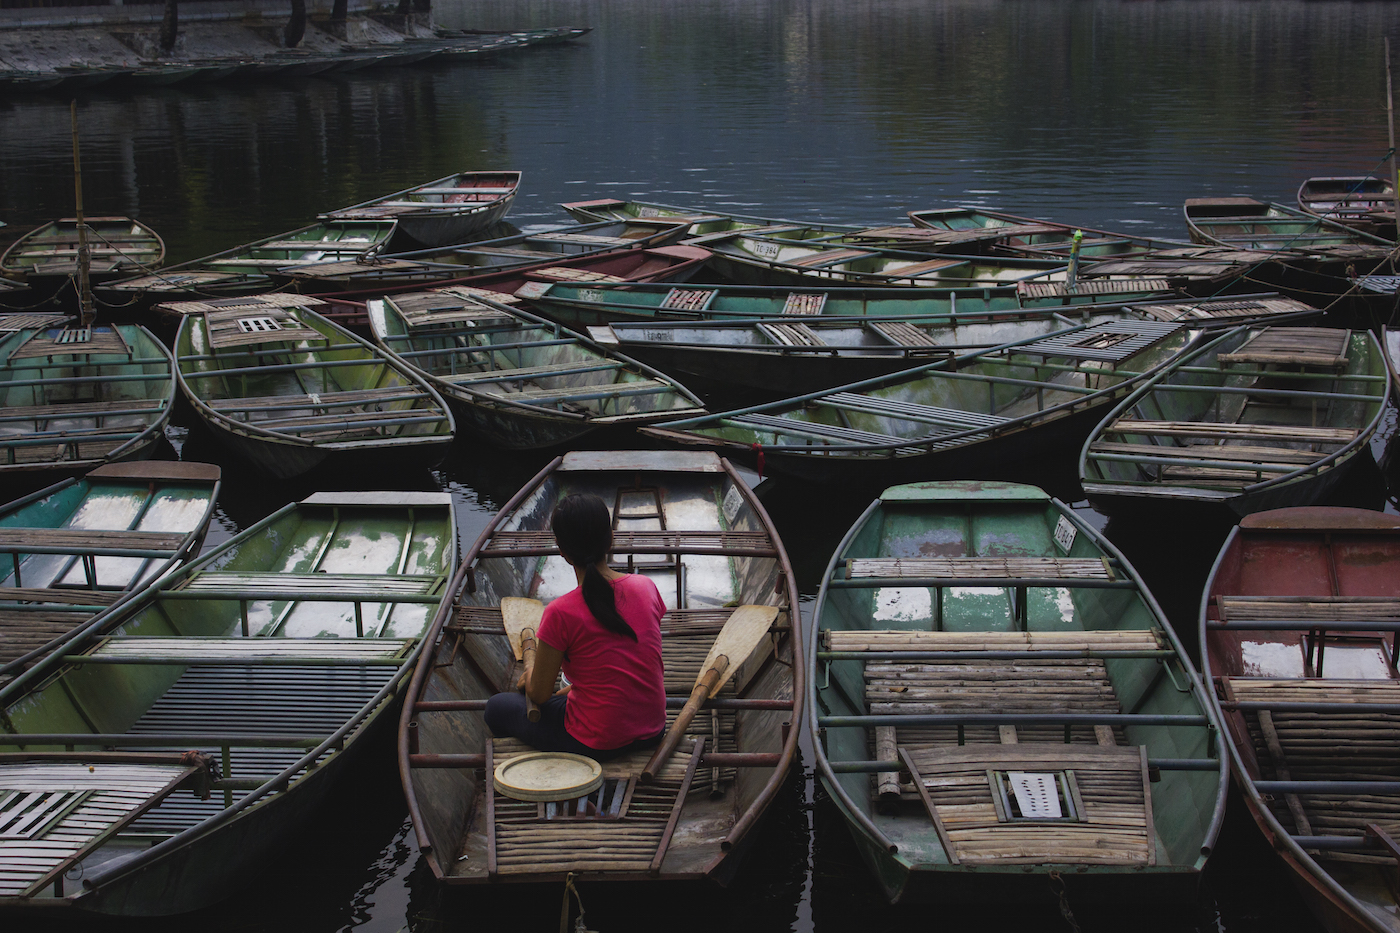 Marvellous Pictures of Vietnam by Manon Esnouf